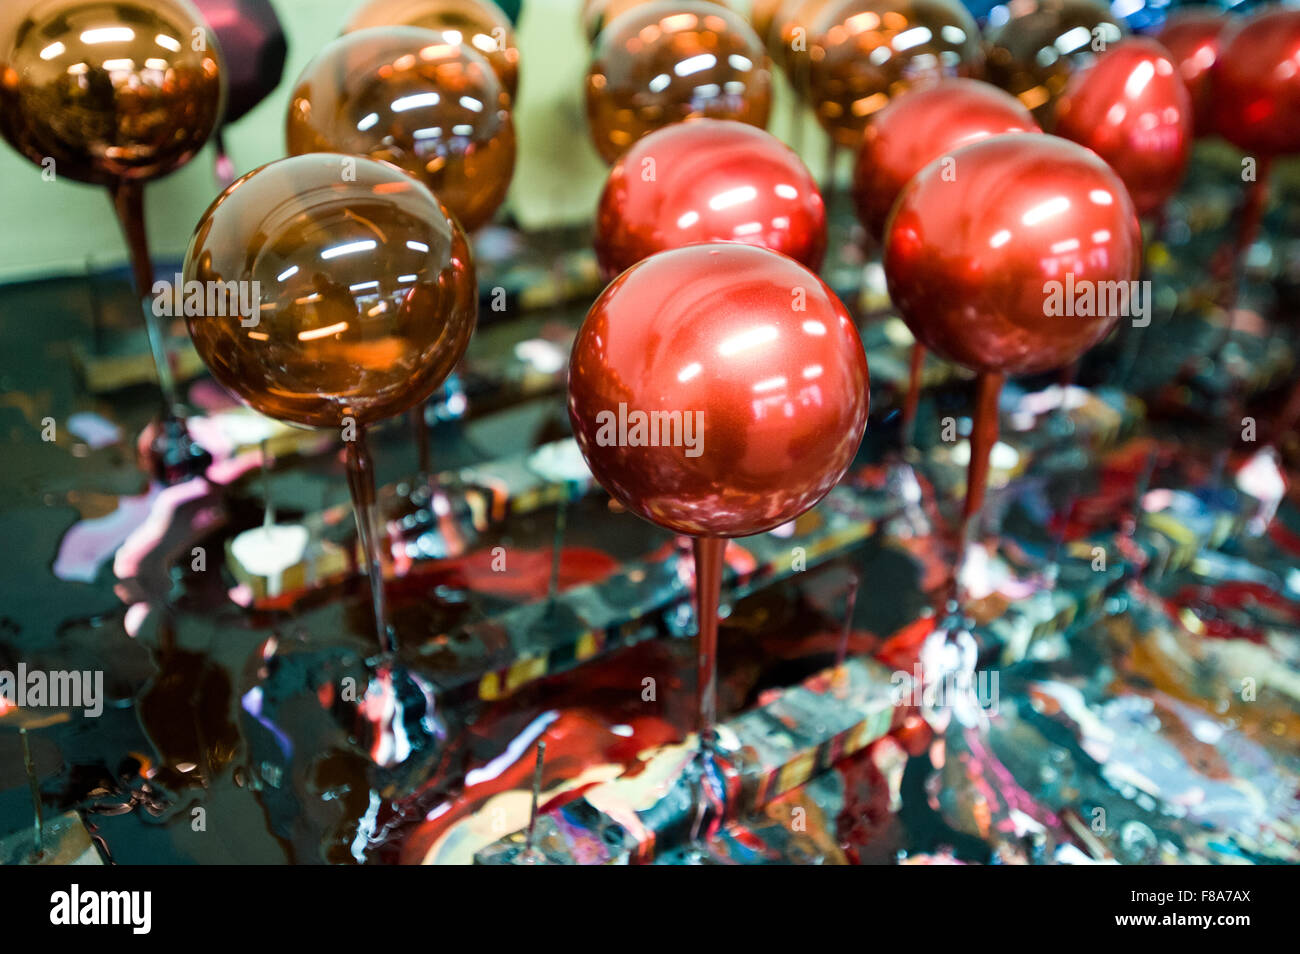 Piotrkow Trybunalski, Poland. 7th December, 2015. Painted and unfinished Christmas balls left to dry out at 'Szkło - Stock Image